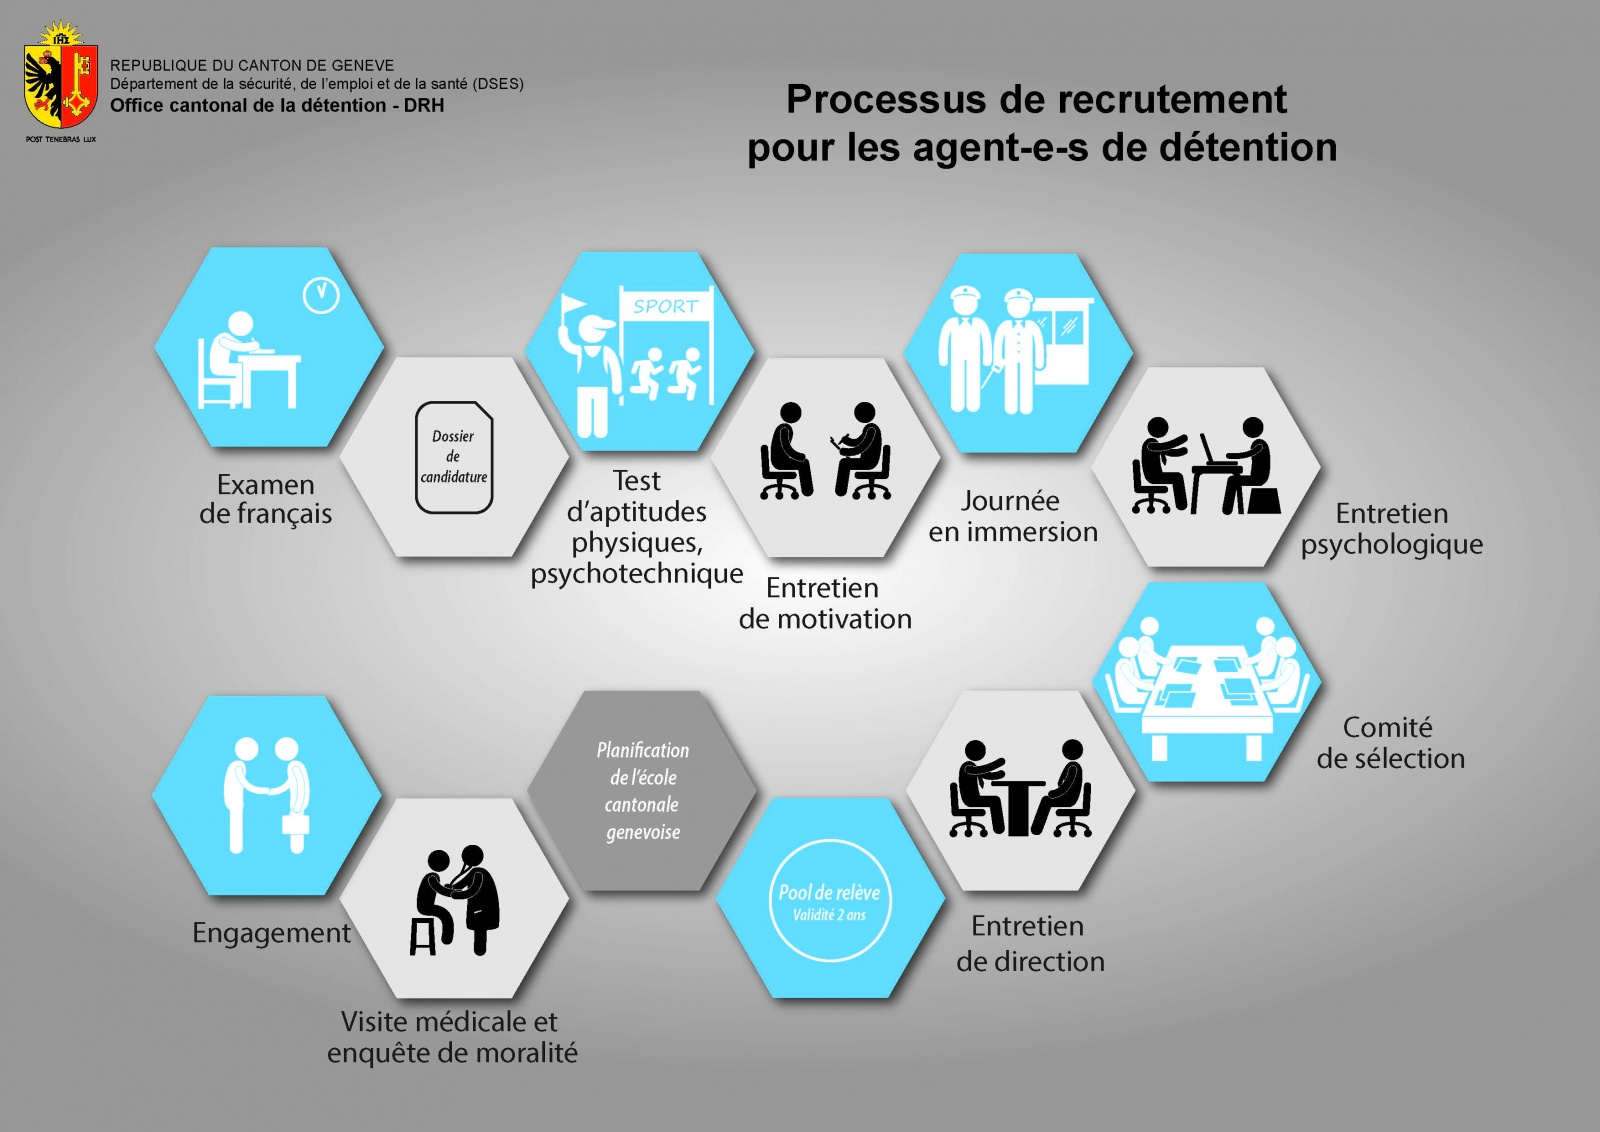 Processus de recrutement des agents de detention